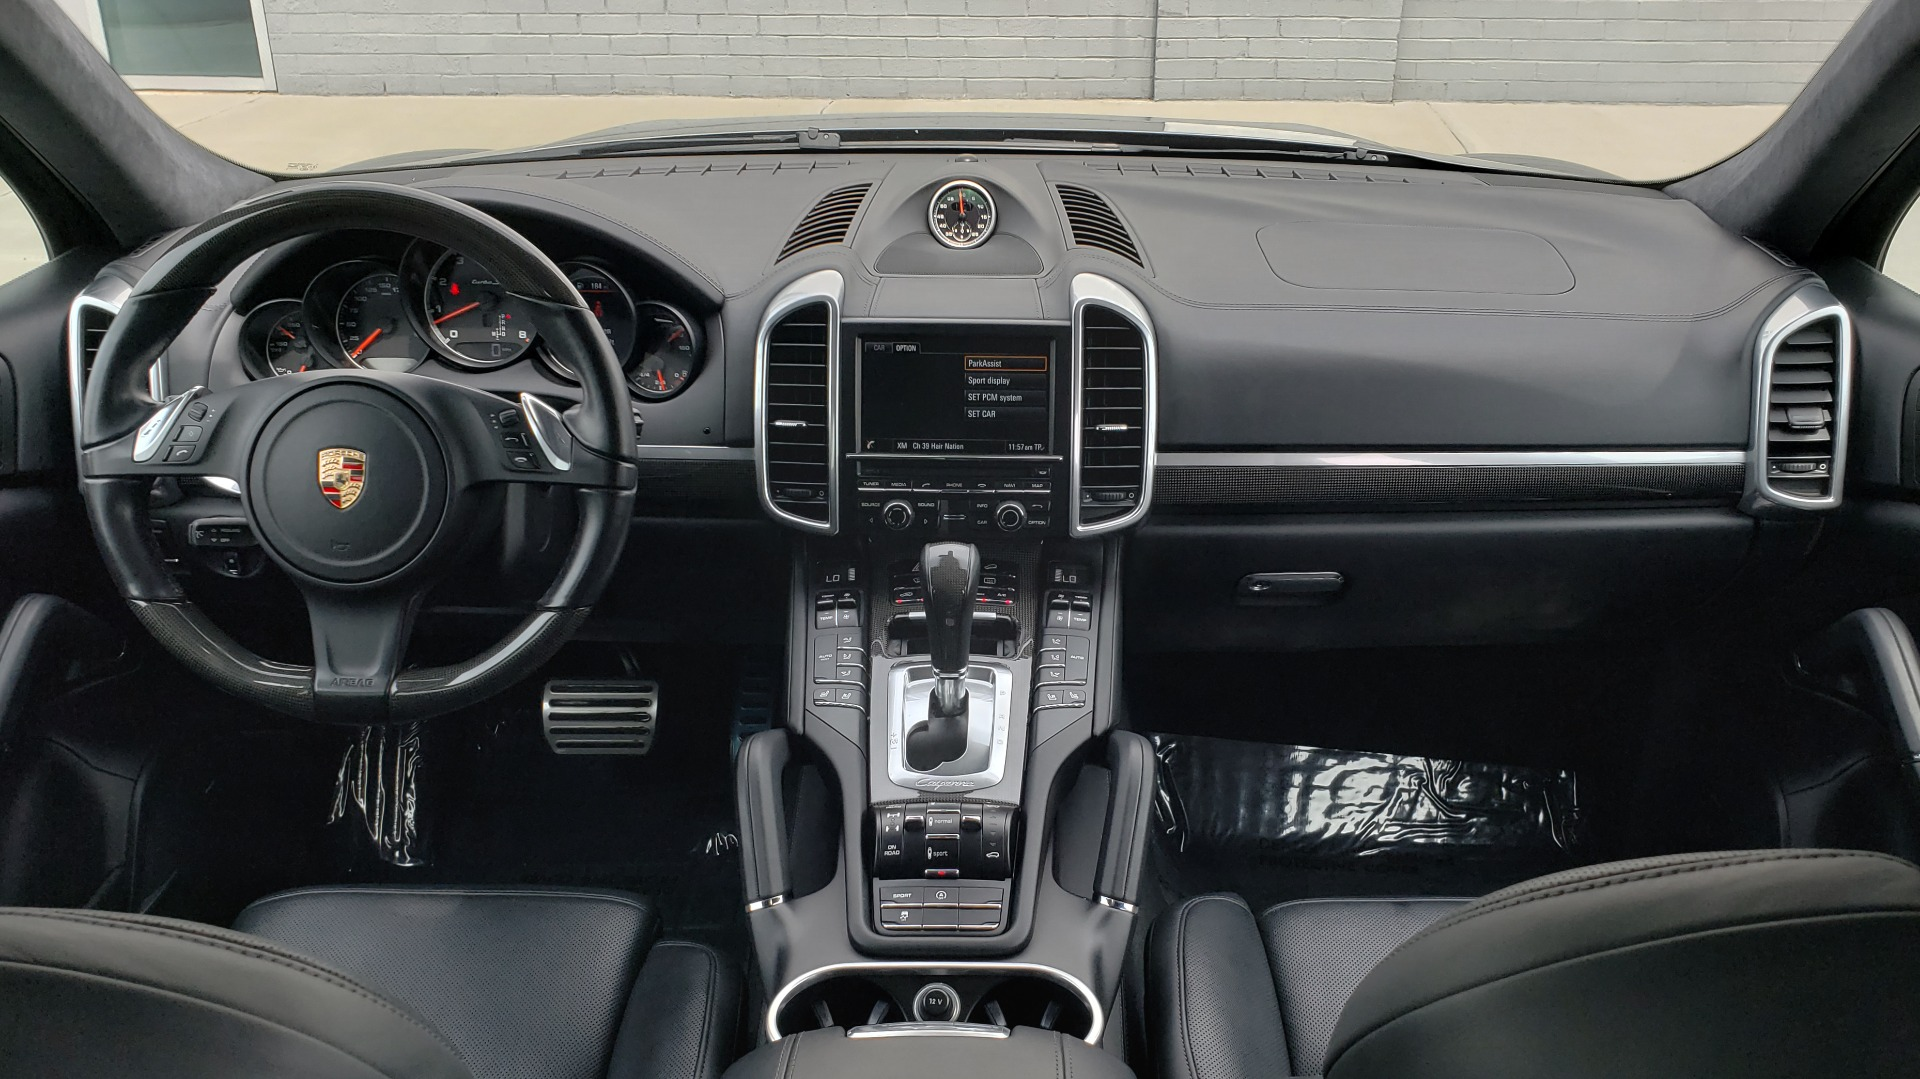 Used 2014 Porsche CAYENNE TURBO S / AWD / NAV / BOSE / PANO-ROOF / LCA / REARVIEW for sale Sold at Formula Imports in Charlotte NC 28227 86